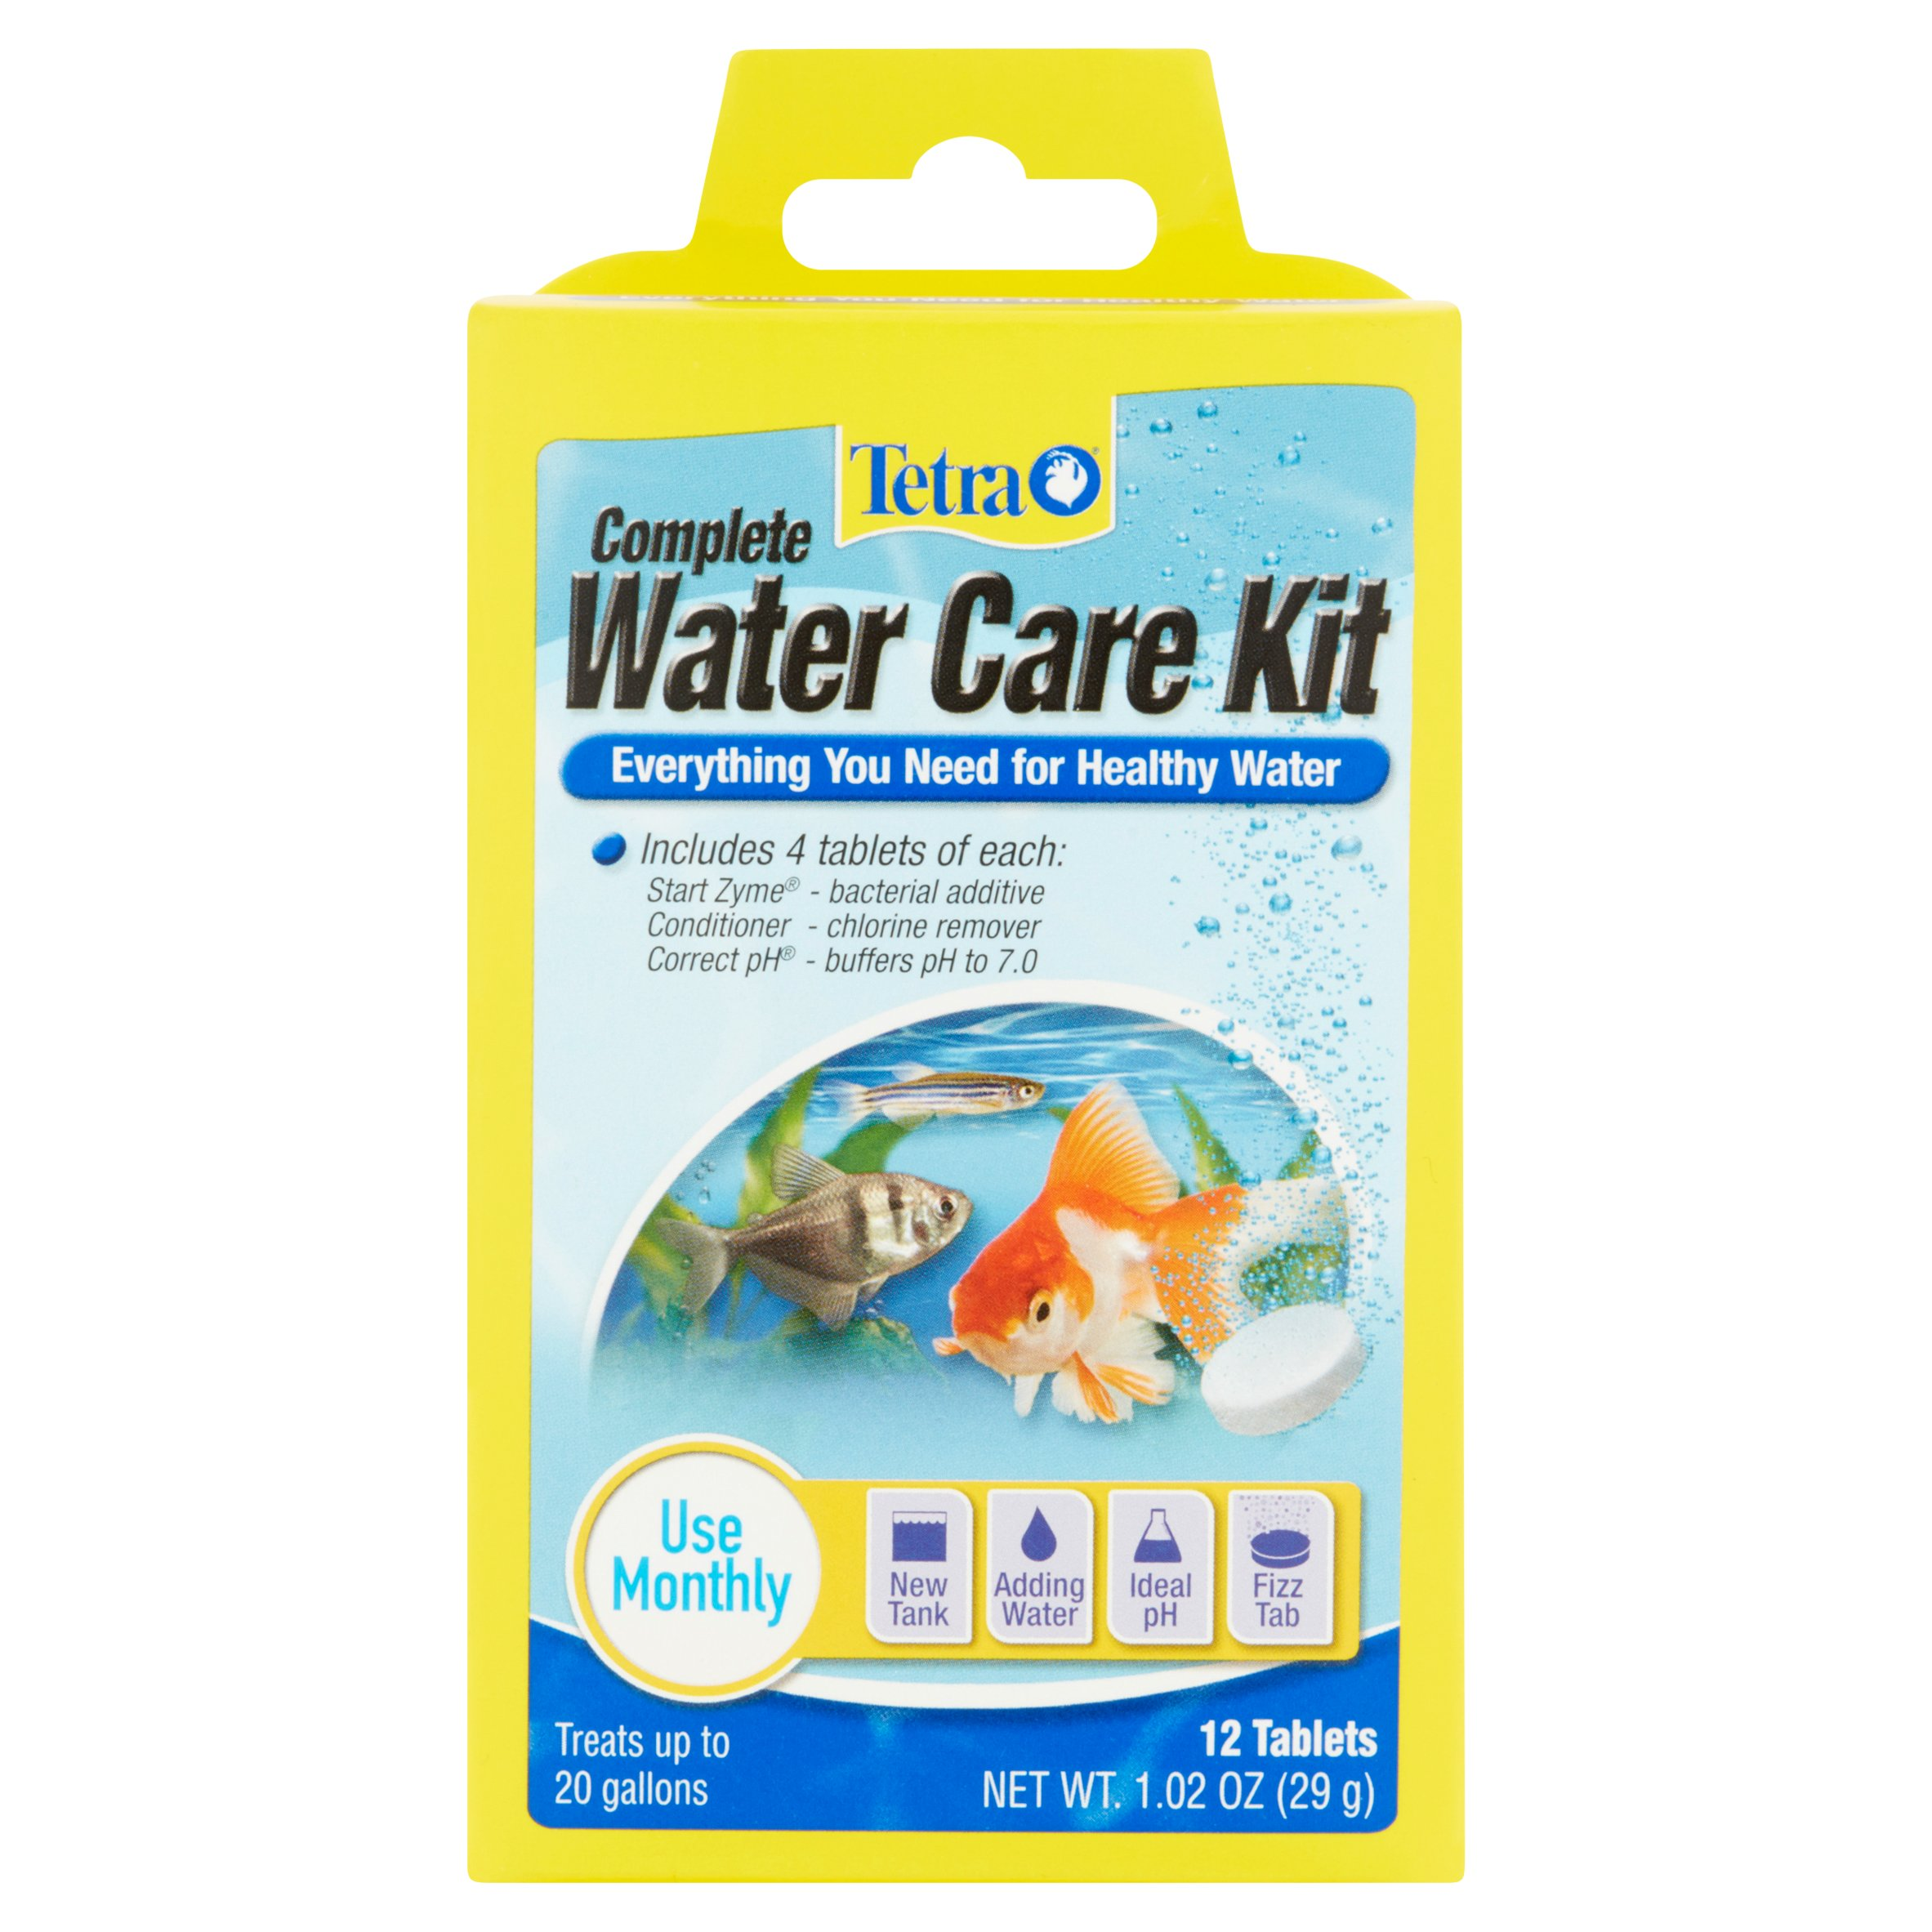 Tetra Complete Water Care Kit with TetraCare, 12-Count